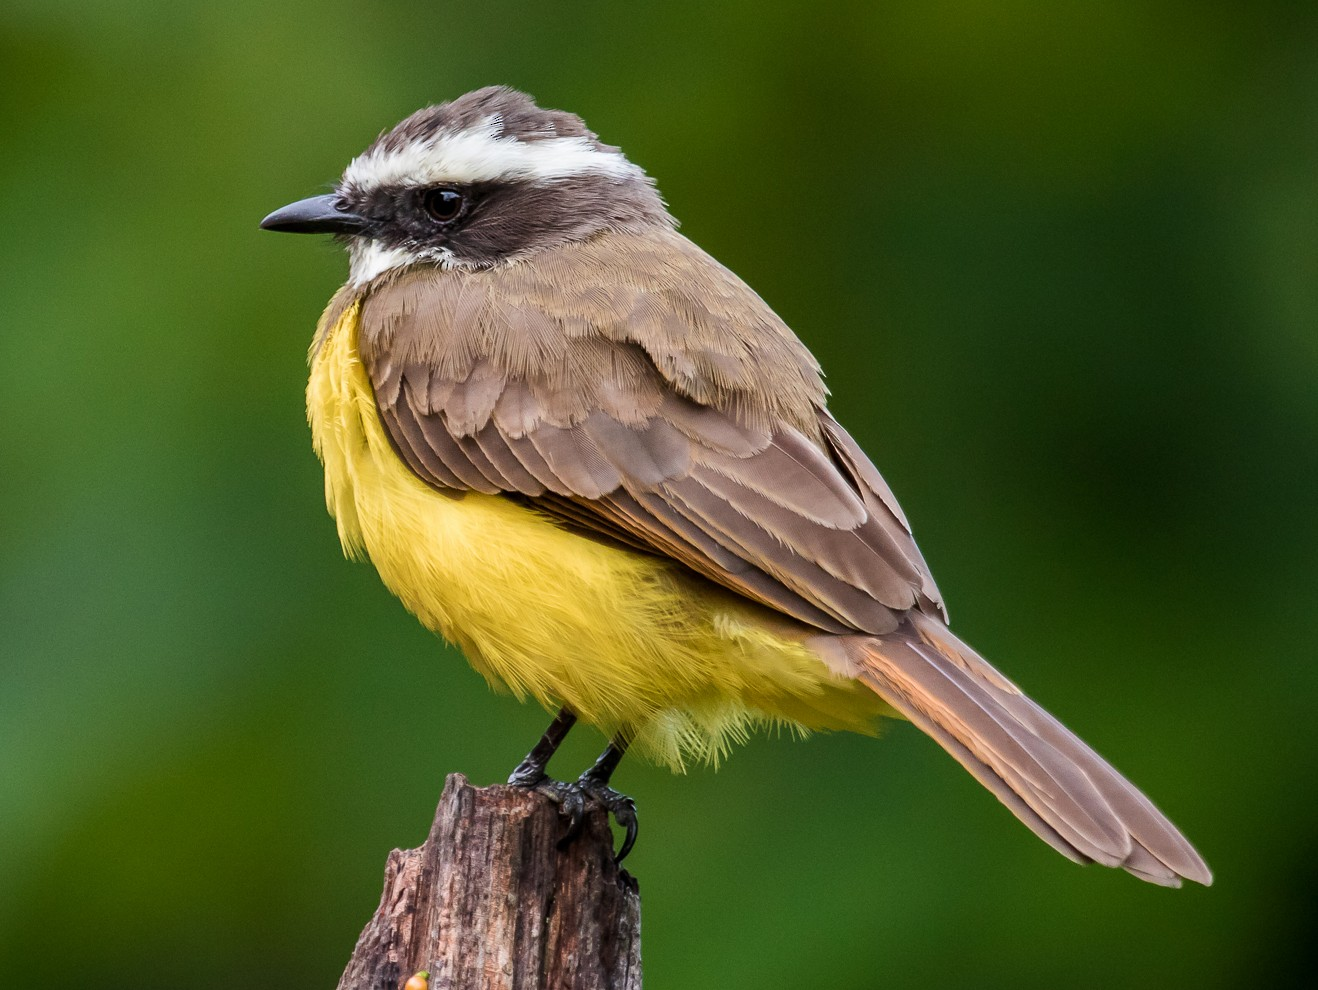 Rusty-margined Flycatcher - David Monroy Rengifo